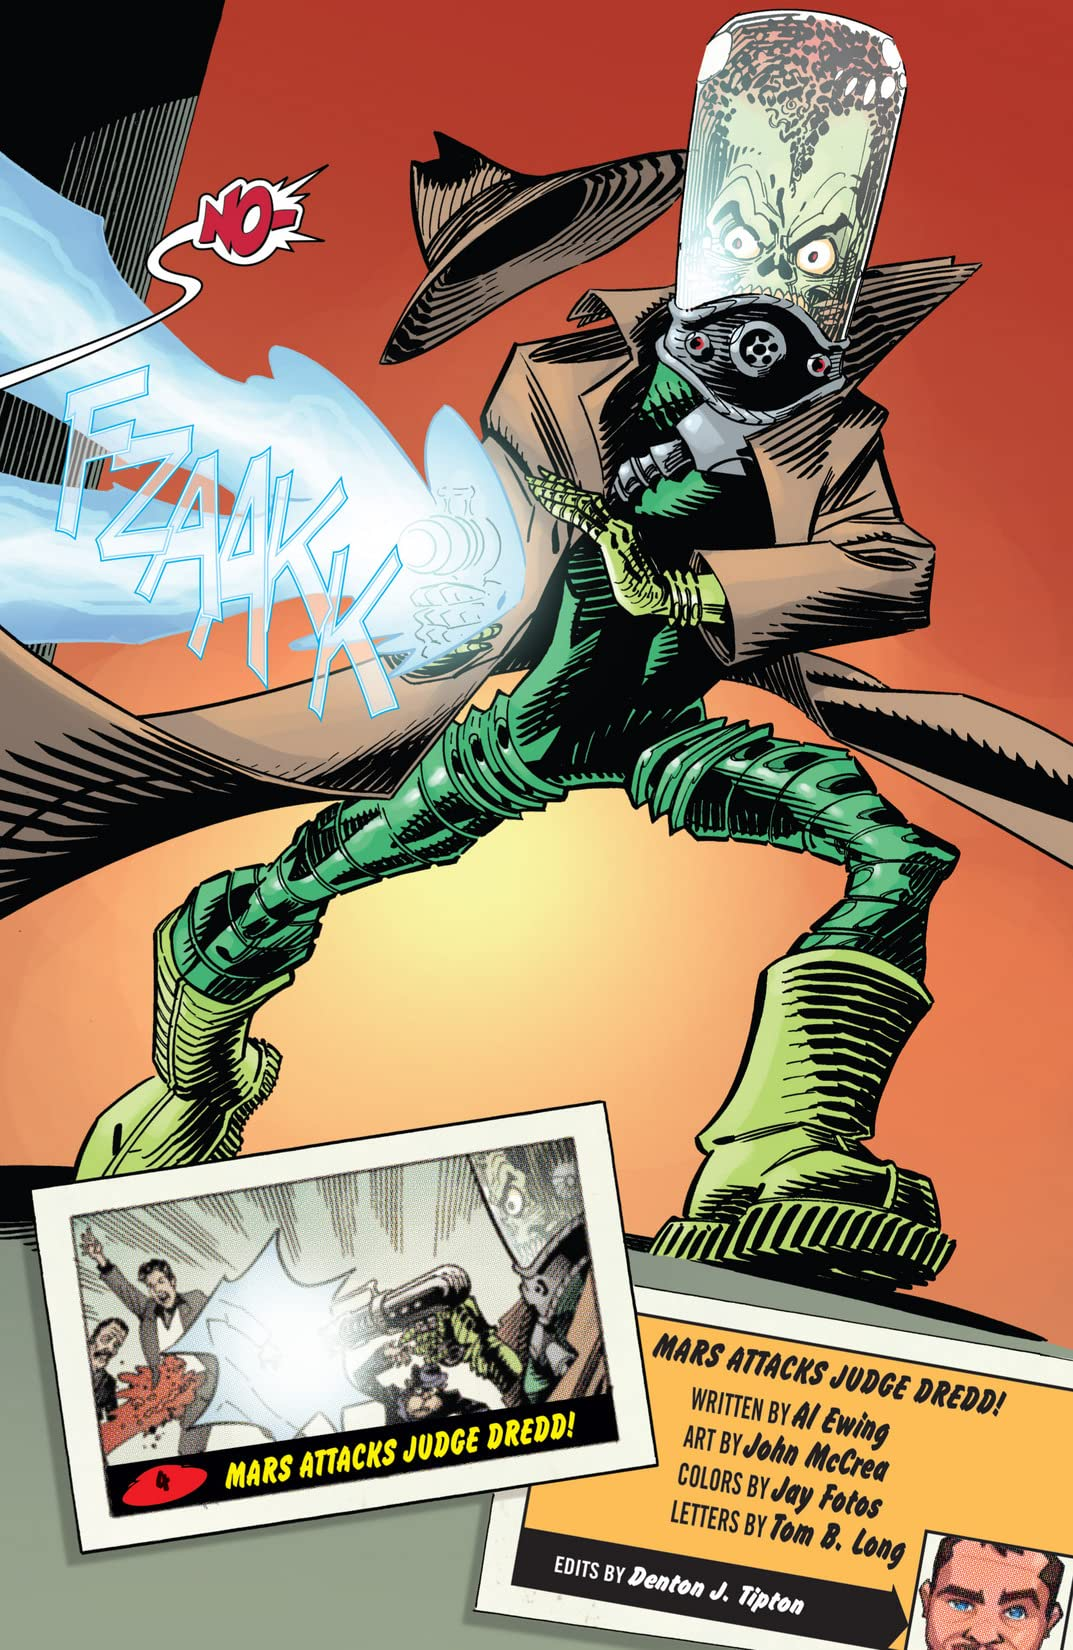 Mars Attacks Judge Dredd #1 (of 4)